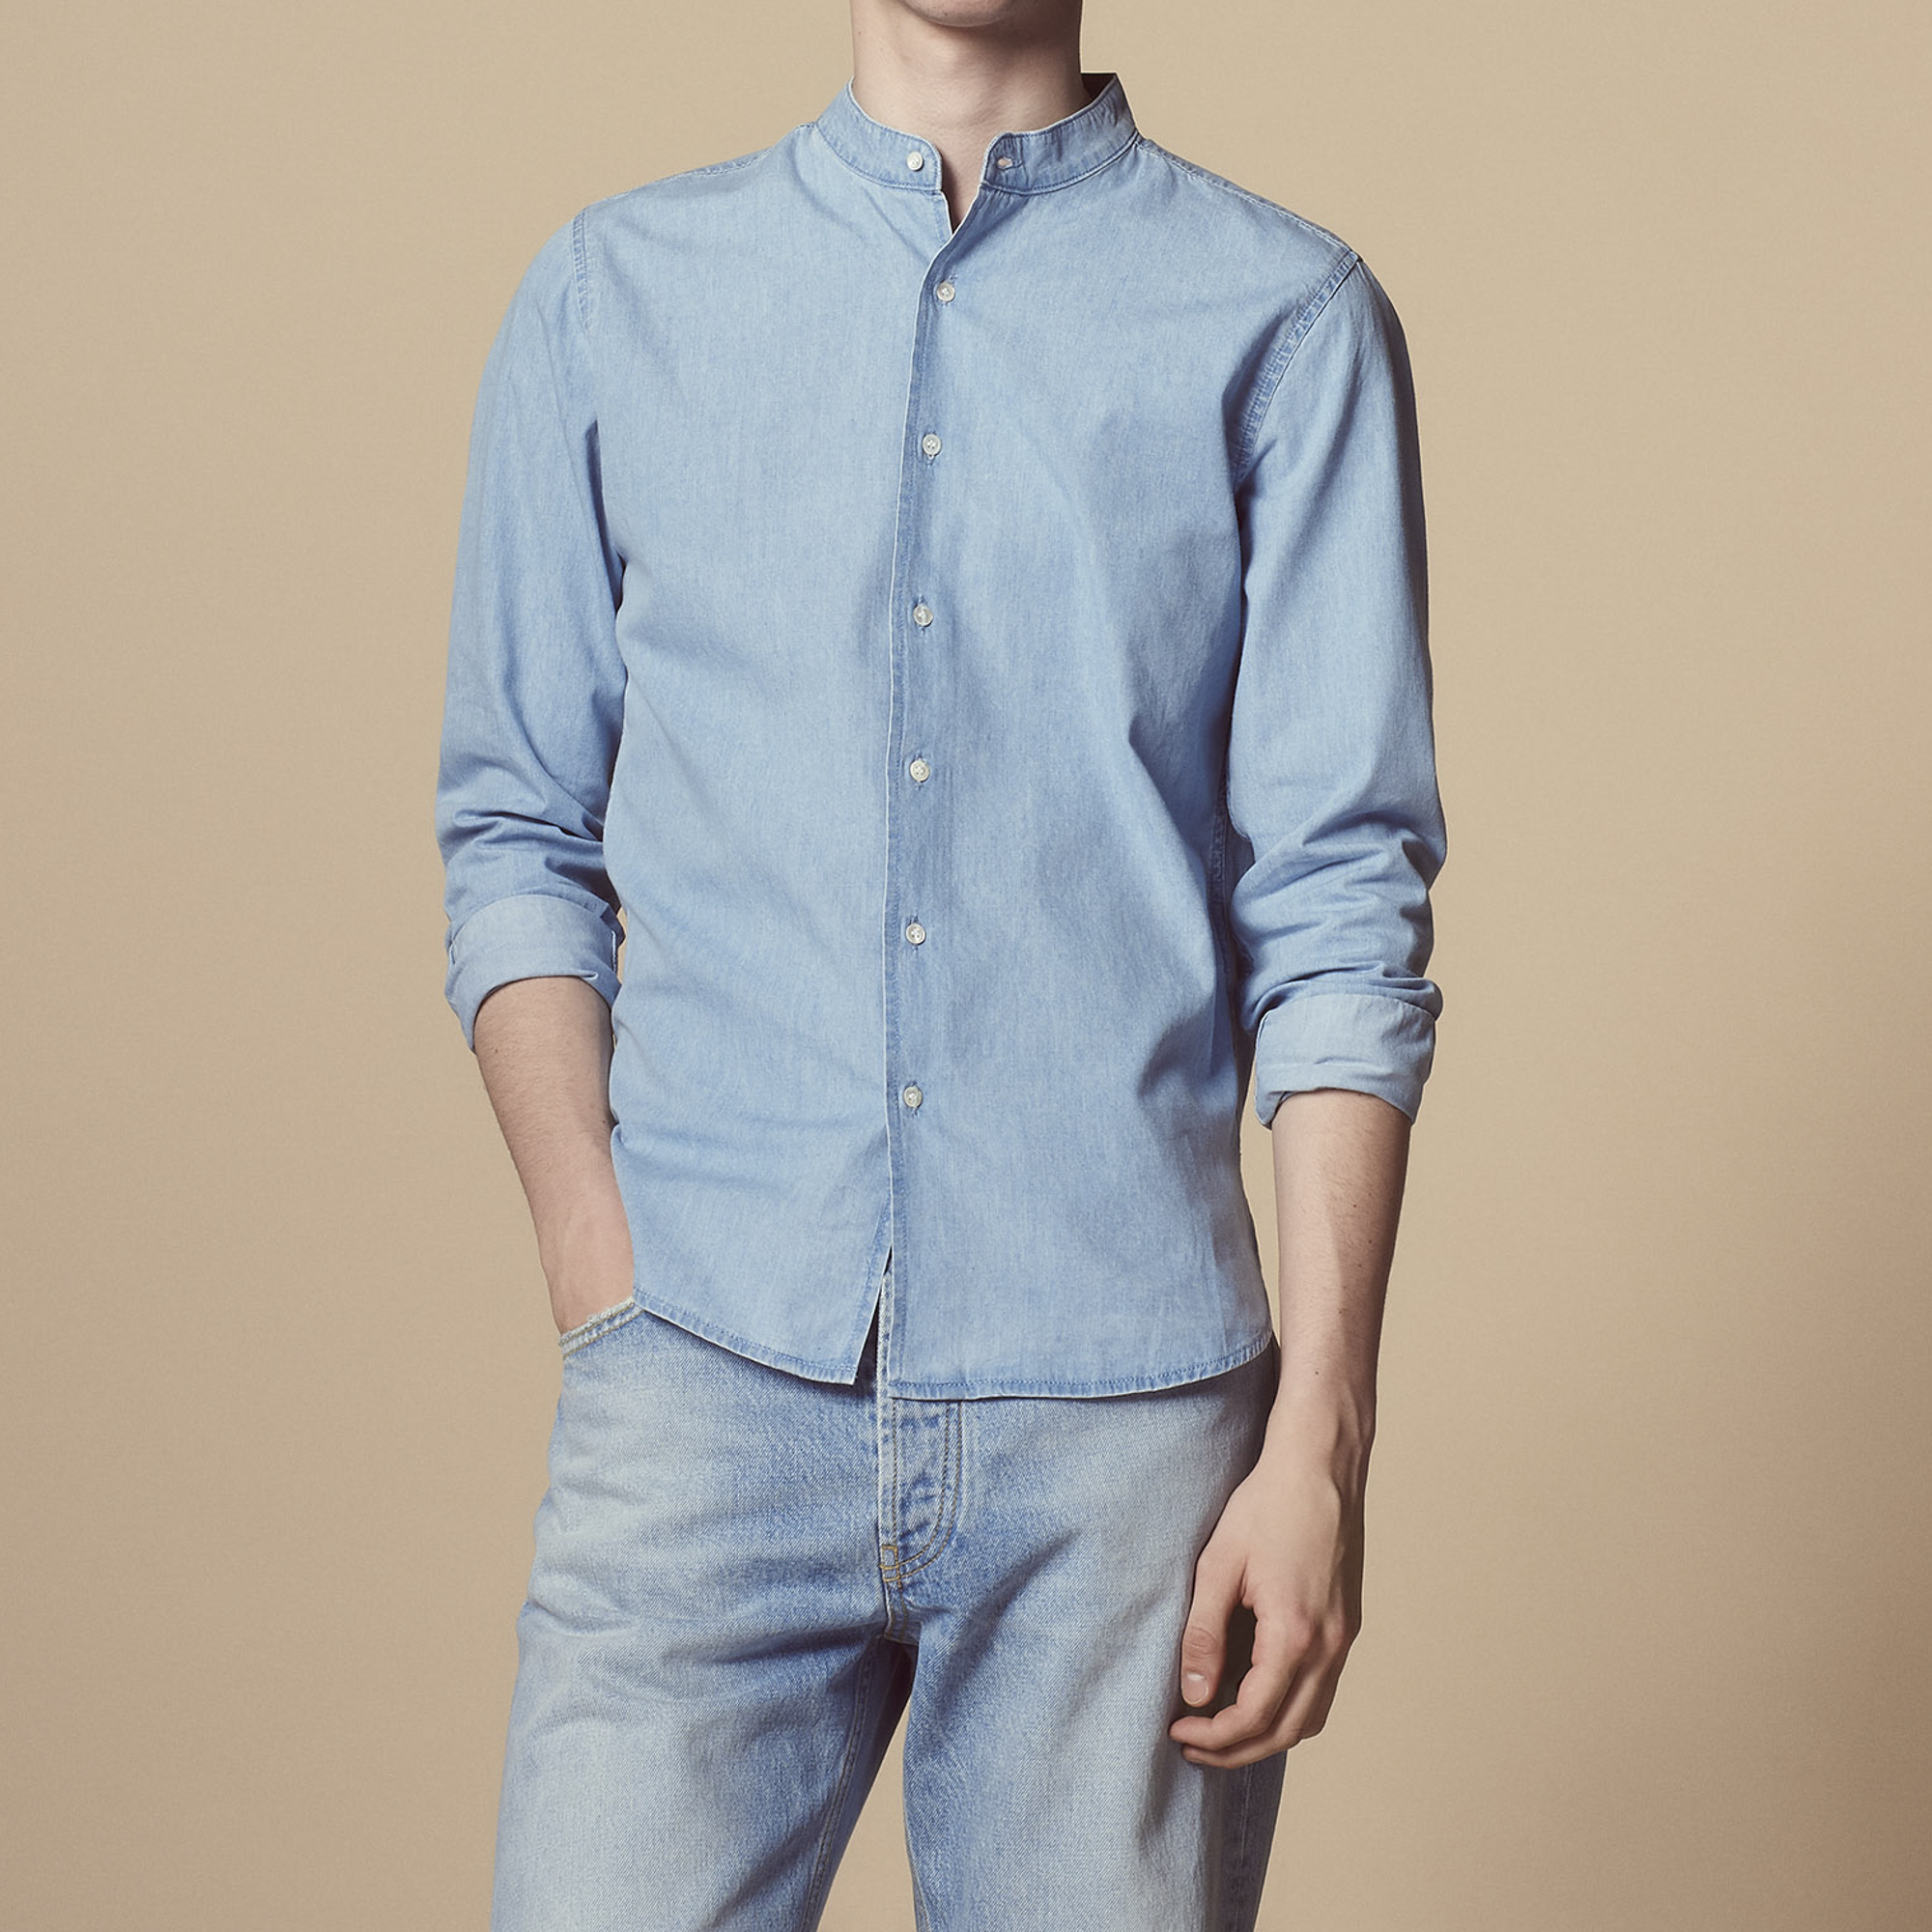 529f49297b1 Chambray shirt with mandarin collar   null color Light Blue ...